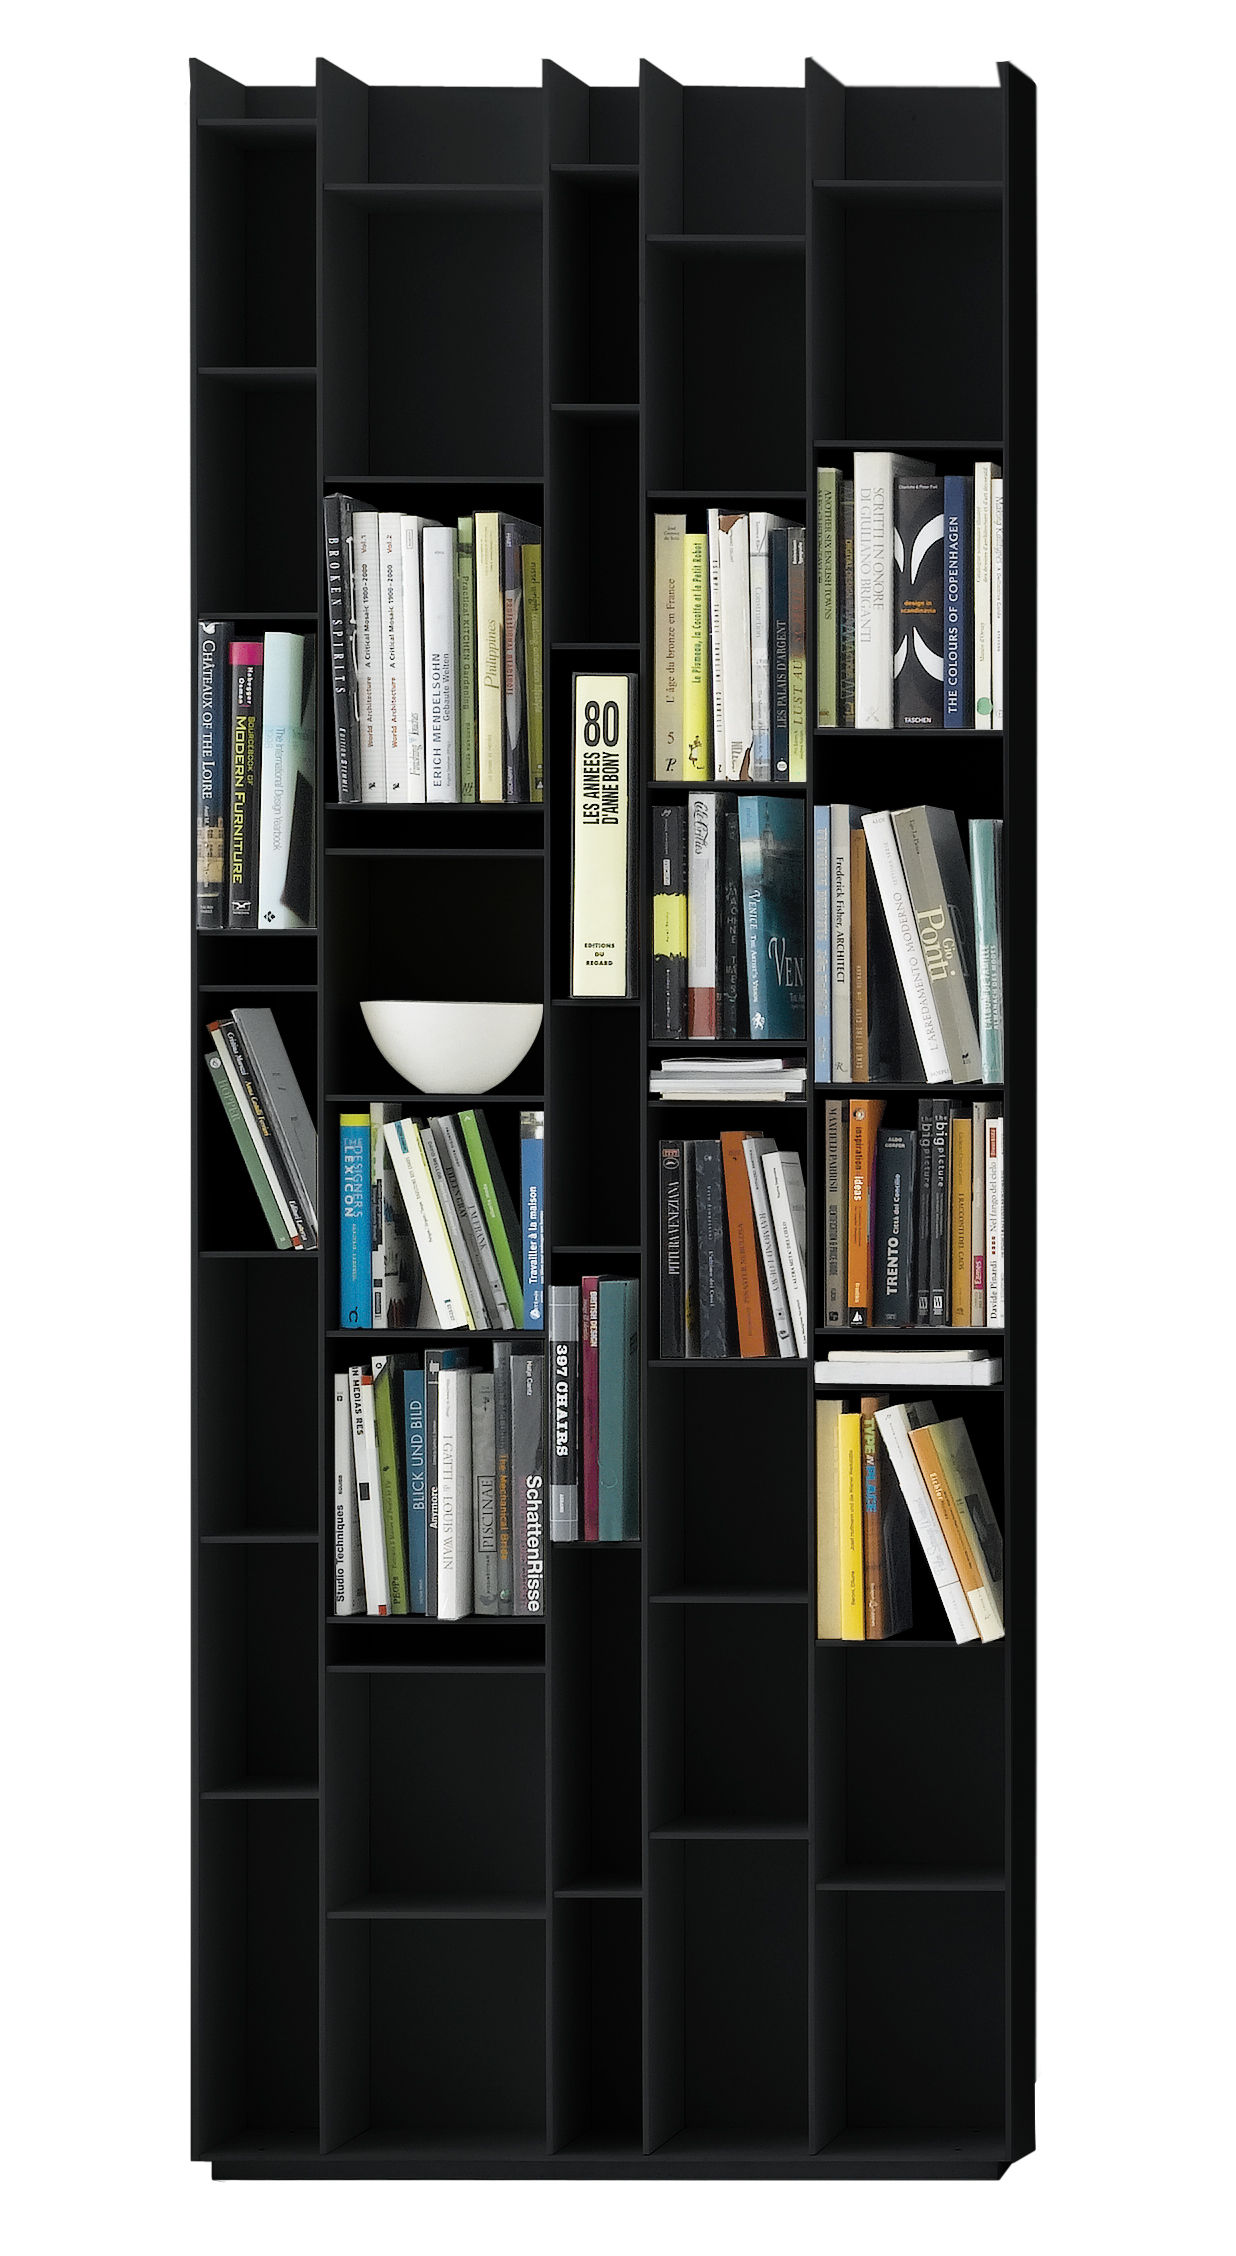 Wonderful image of Home > Furniture > Shelves & bookcases > Random Bookcase by MDF  with #9B6A30 color and 1236x2256 pixels